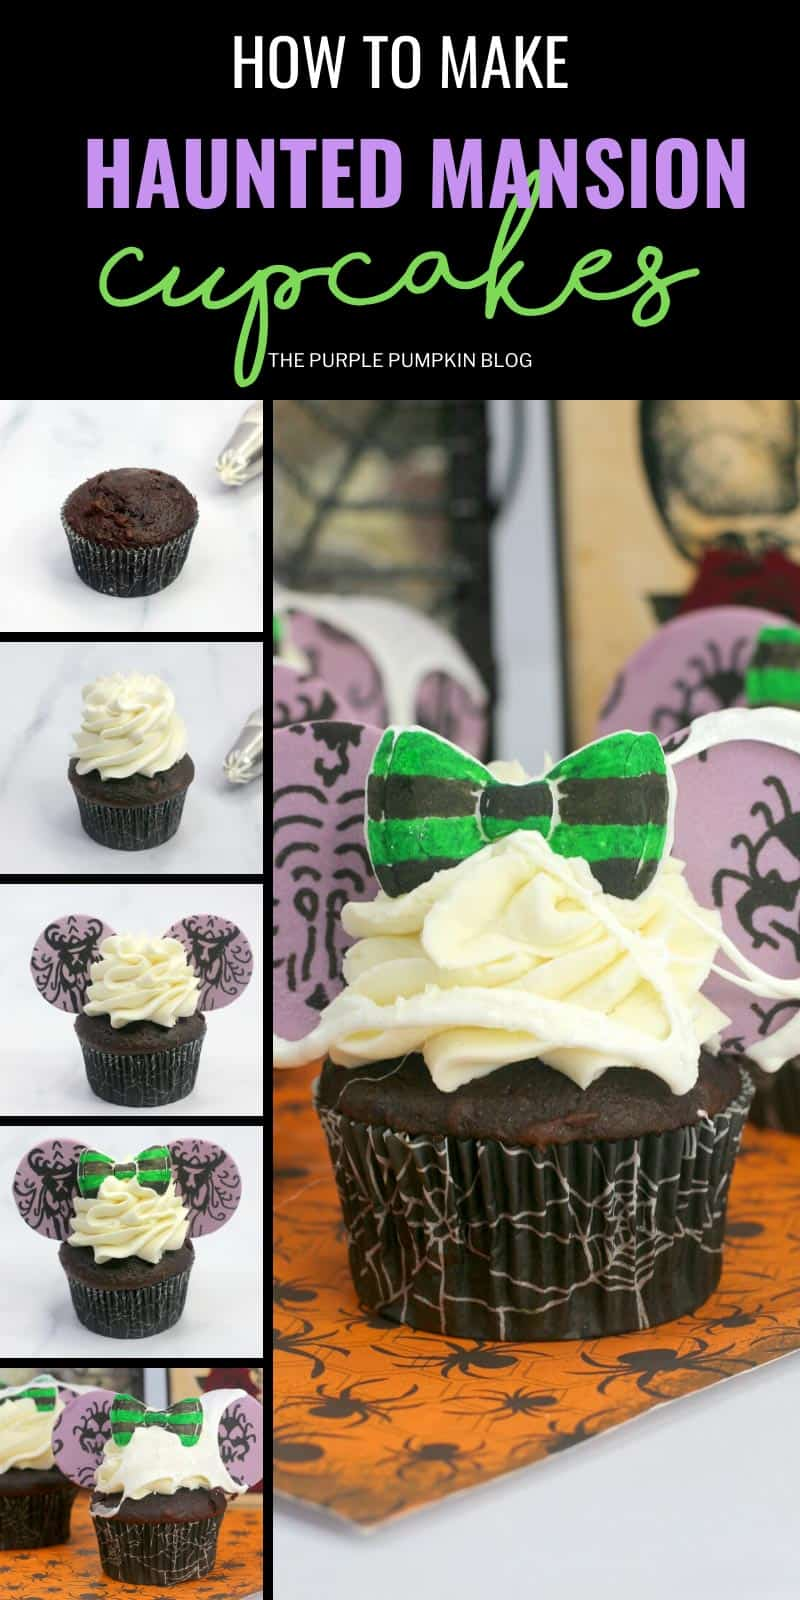 How to make Haunted Mansion Cupcakes